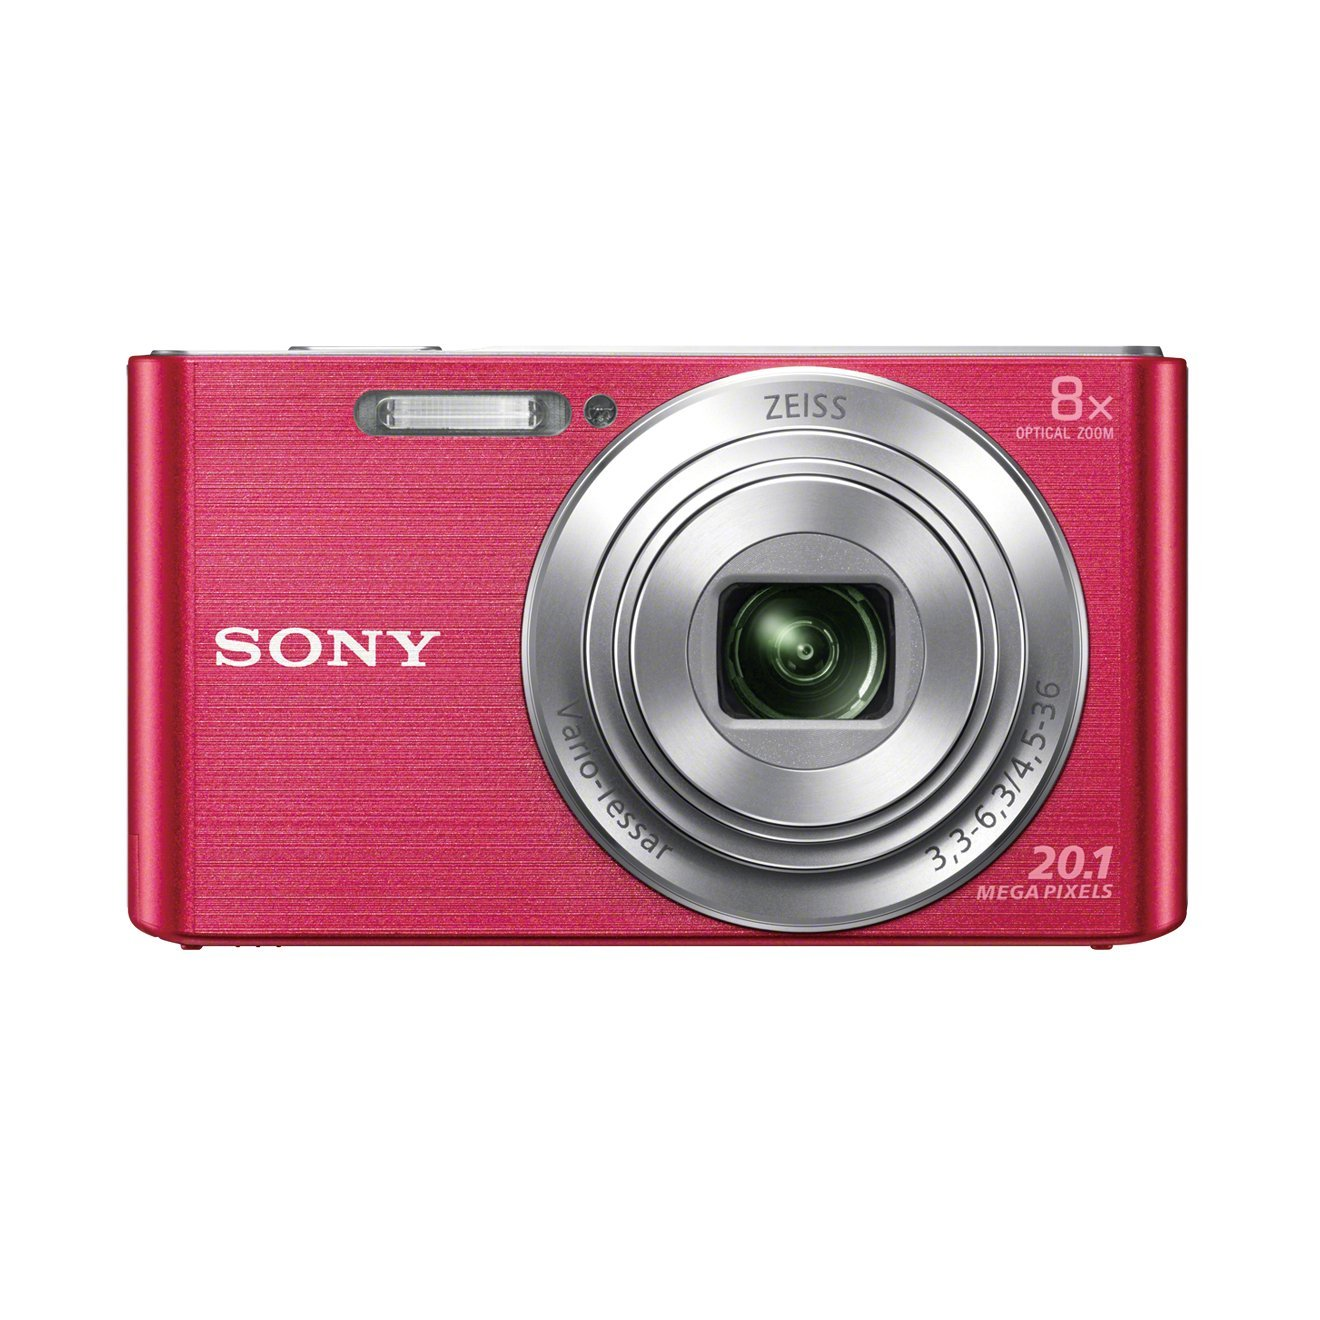 Sony DSC W830 Digitalkamera 2,7 Zoll Pink: Amazon.de: Kamera